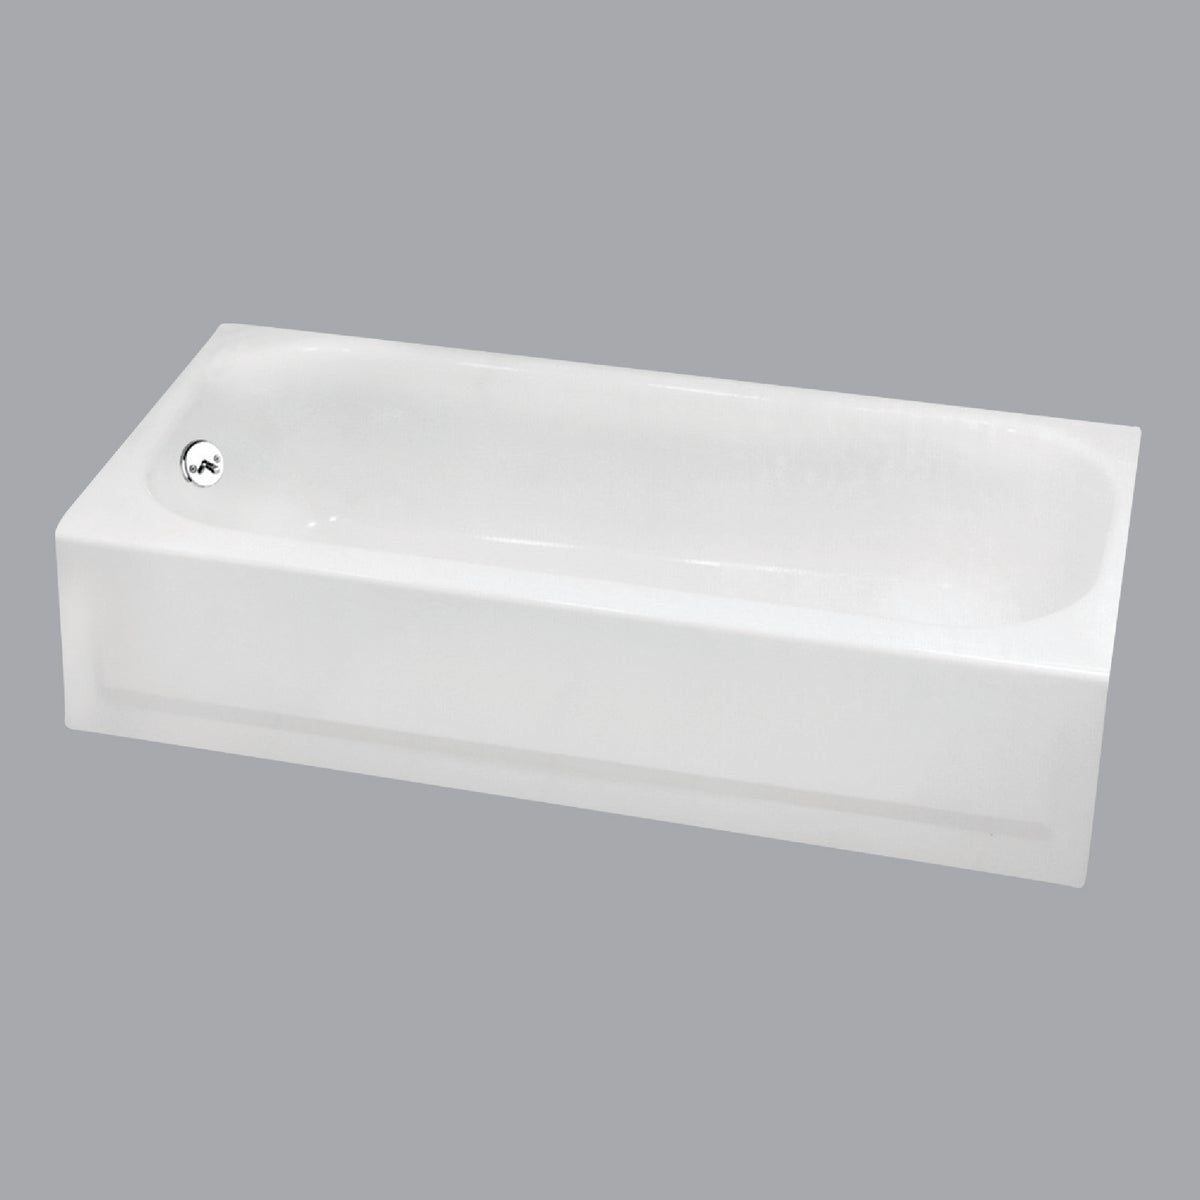 WHITE L/H TUB - 2505-130-01 by Briggs